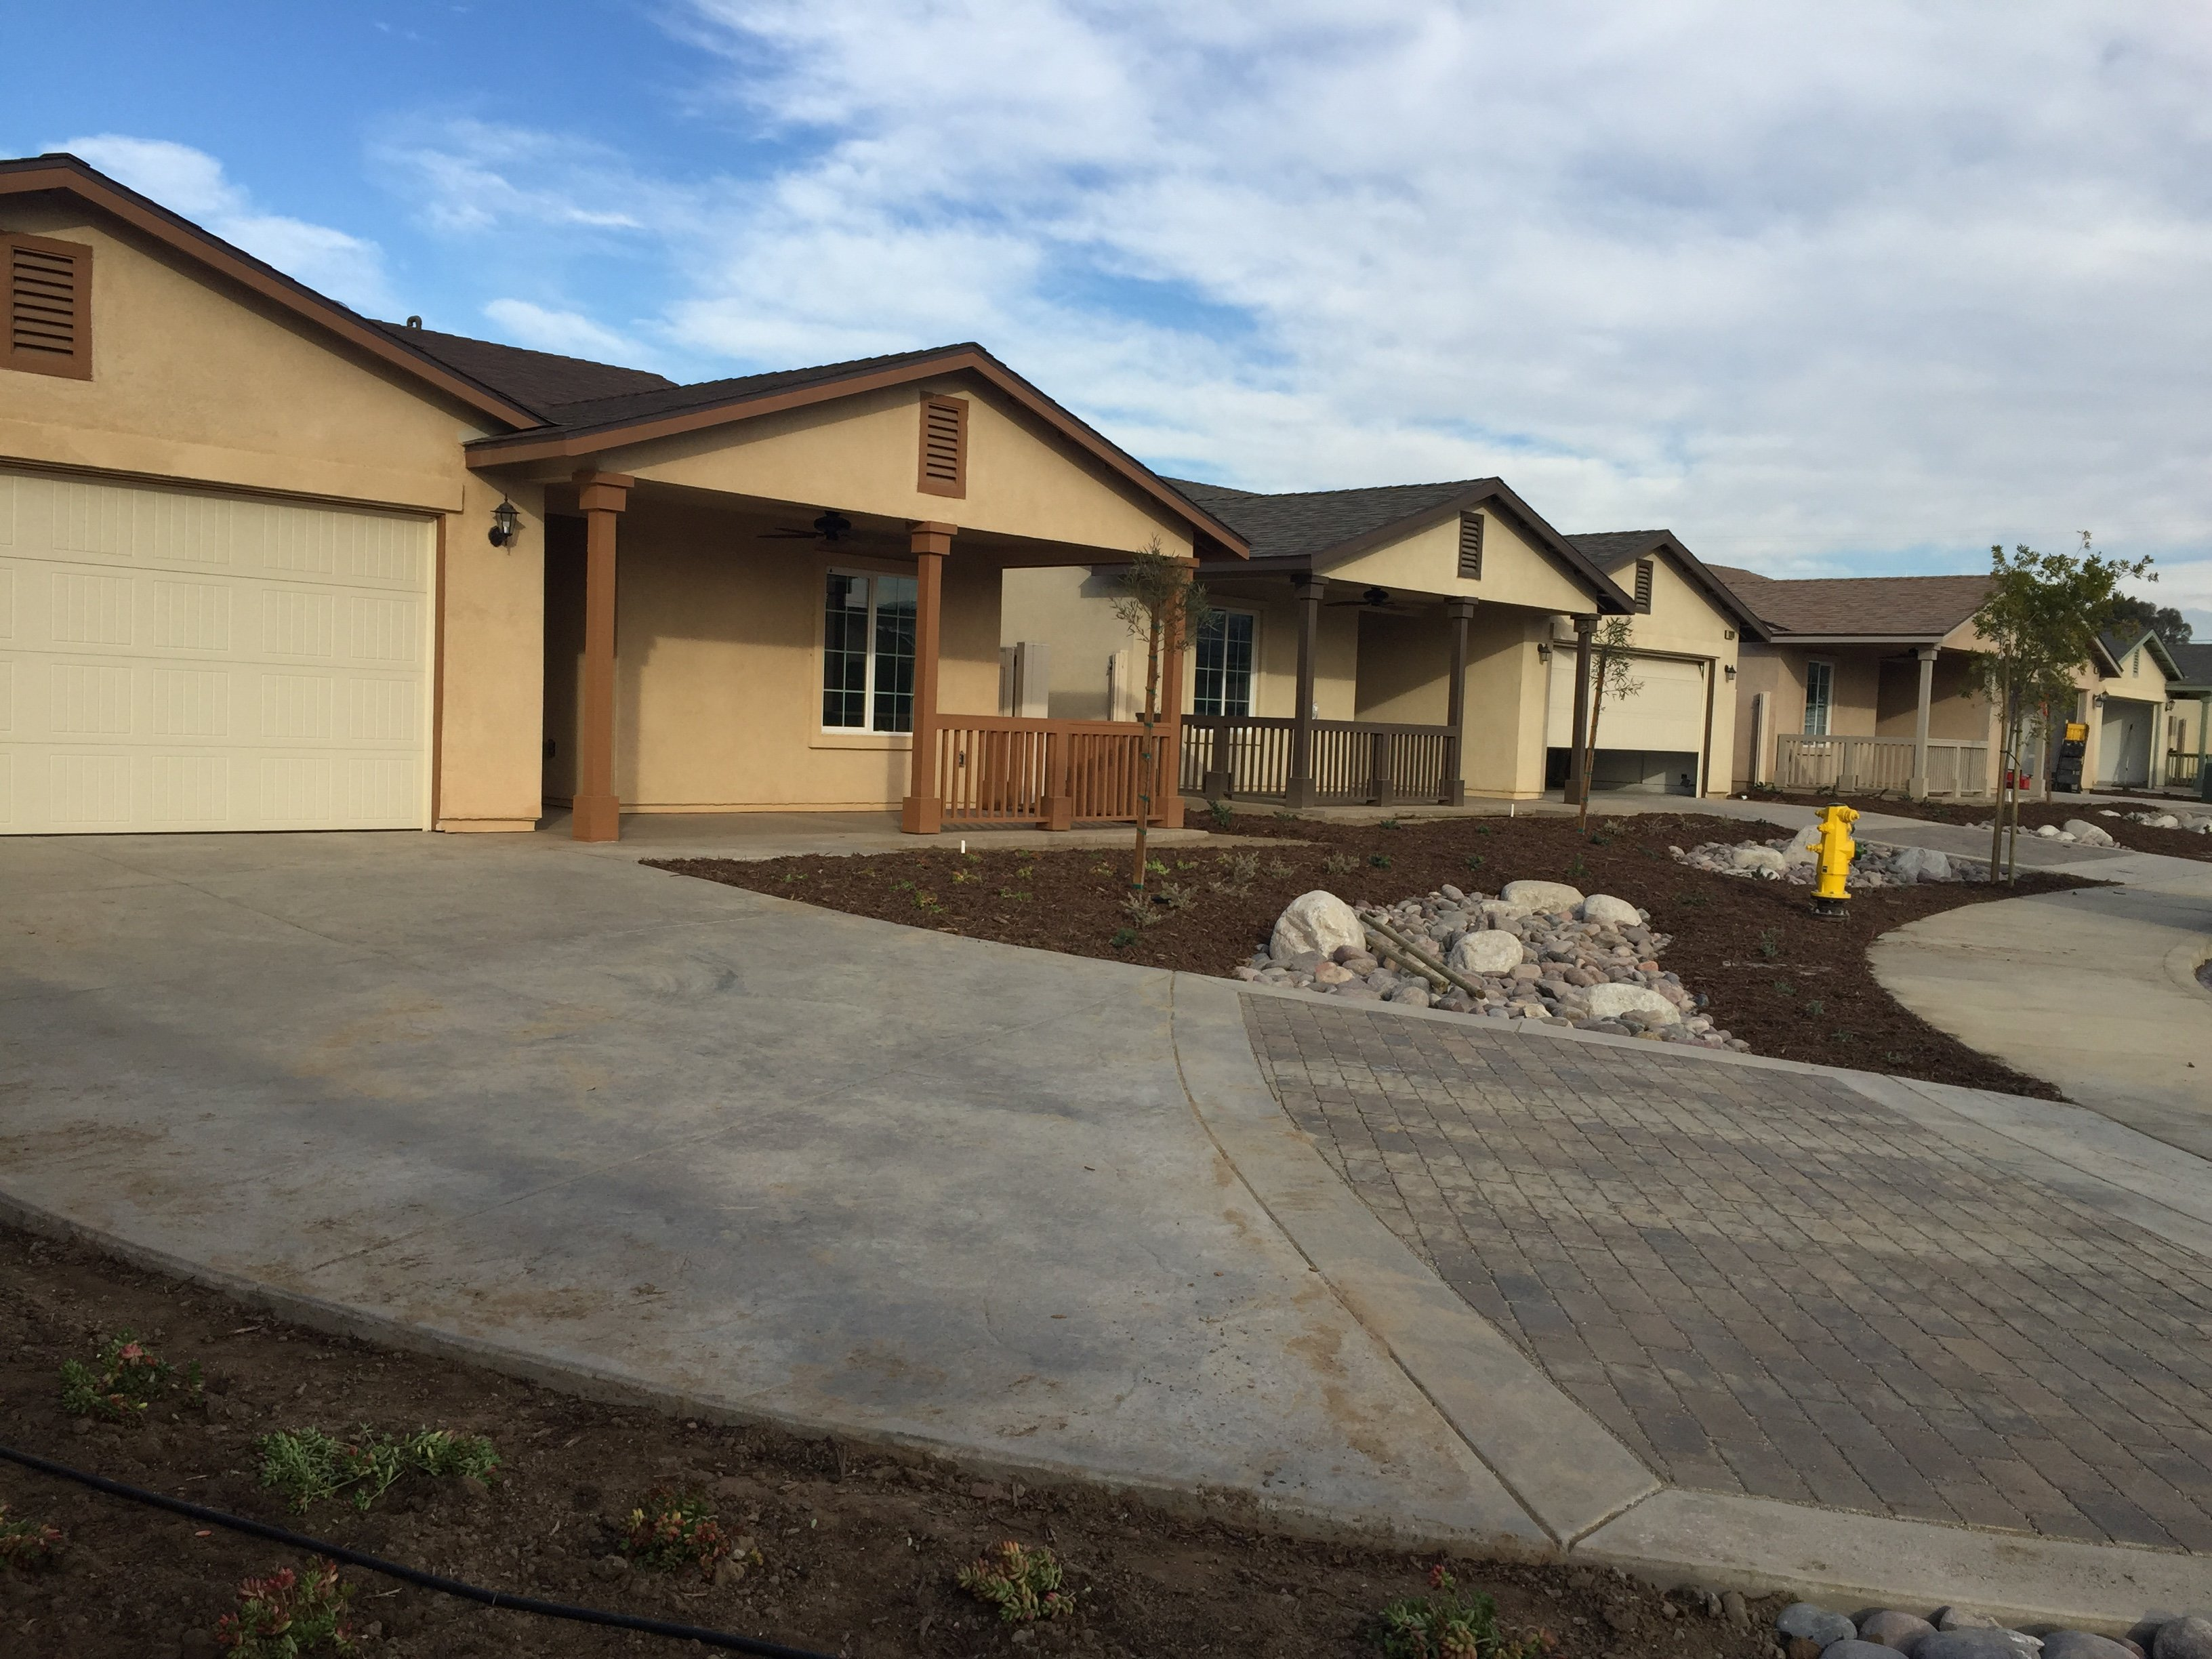 Habitat for Humanity Riverside building safe, decent, and affordable homes in Moreno Valley